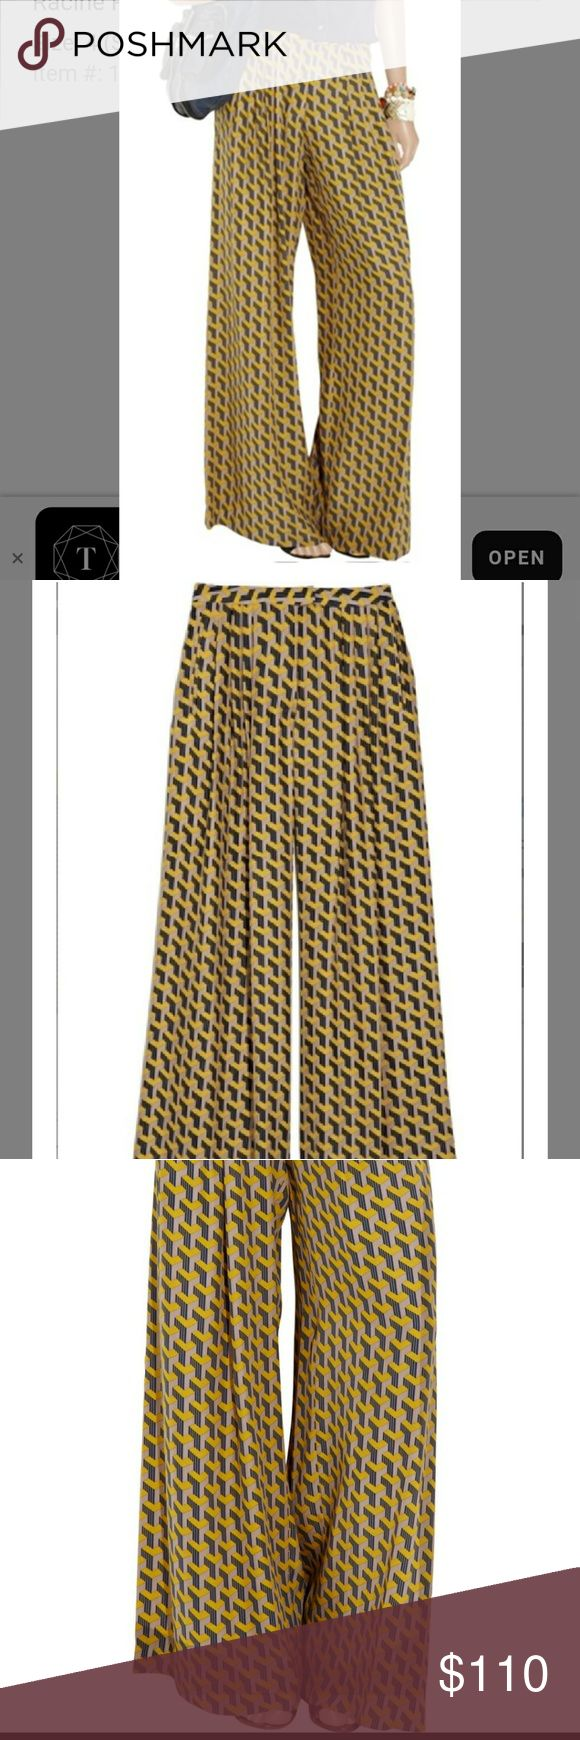 """Rag & Bone racine printed wide leg silk pants Beautiful chevron geometric print on these wide leg 100%silk pants in a sz 0. They features a zip button fly and side pockets. They measure  14"""" straight across the waist  11"""" rise  24/25"""" across the hips  33"""" inseam  14"""" straight across the leg opening  They also features flat besom pockets in the back and are in mint condition. rag & bone Pants Wide Leg"""